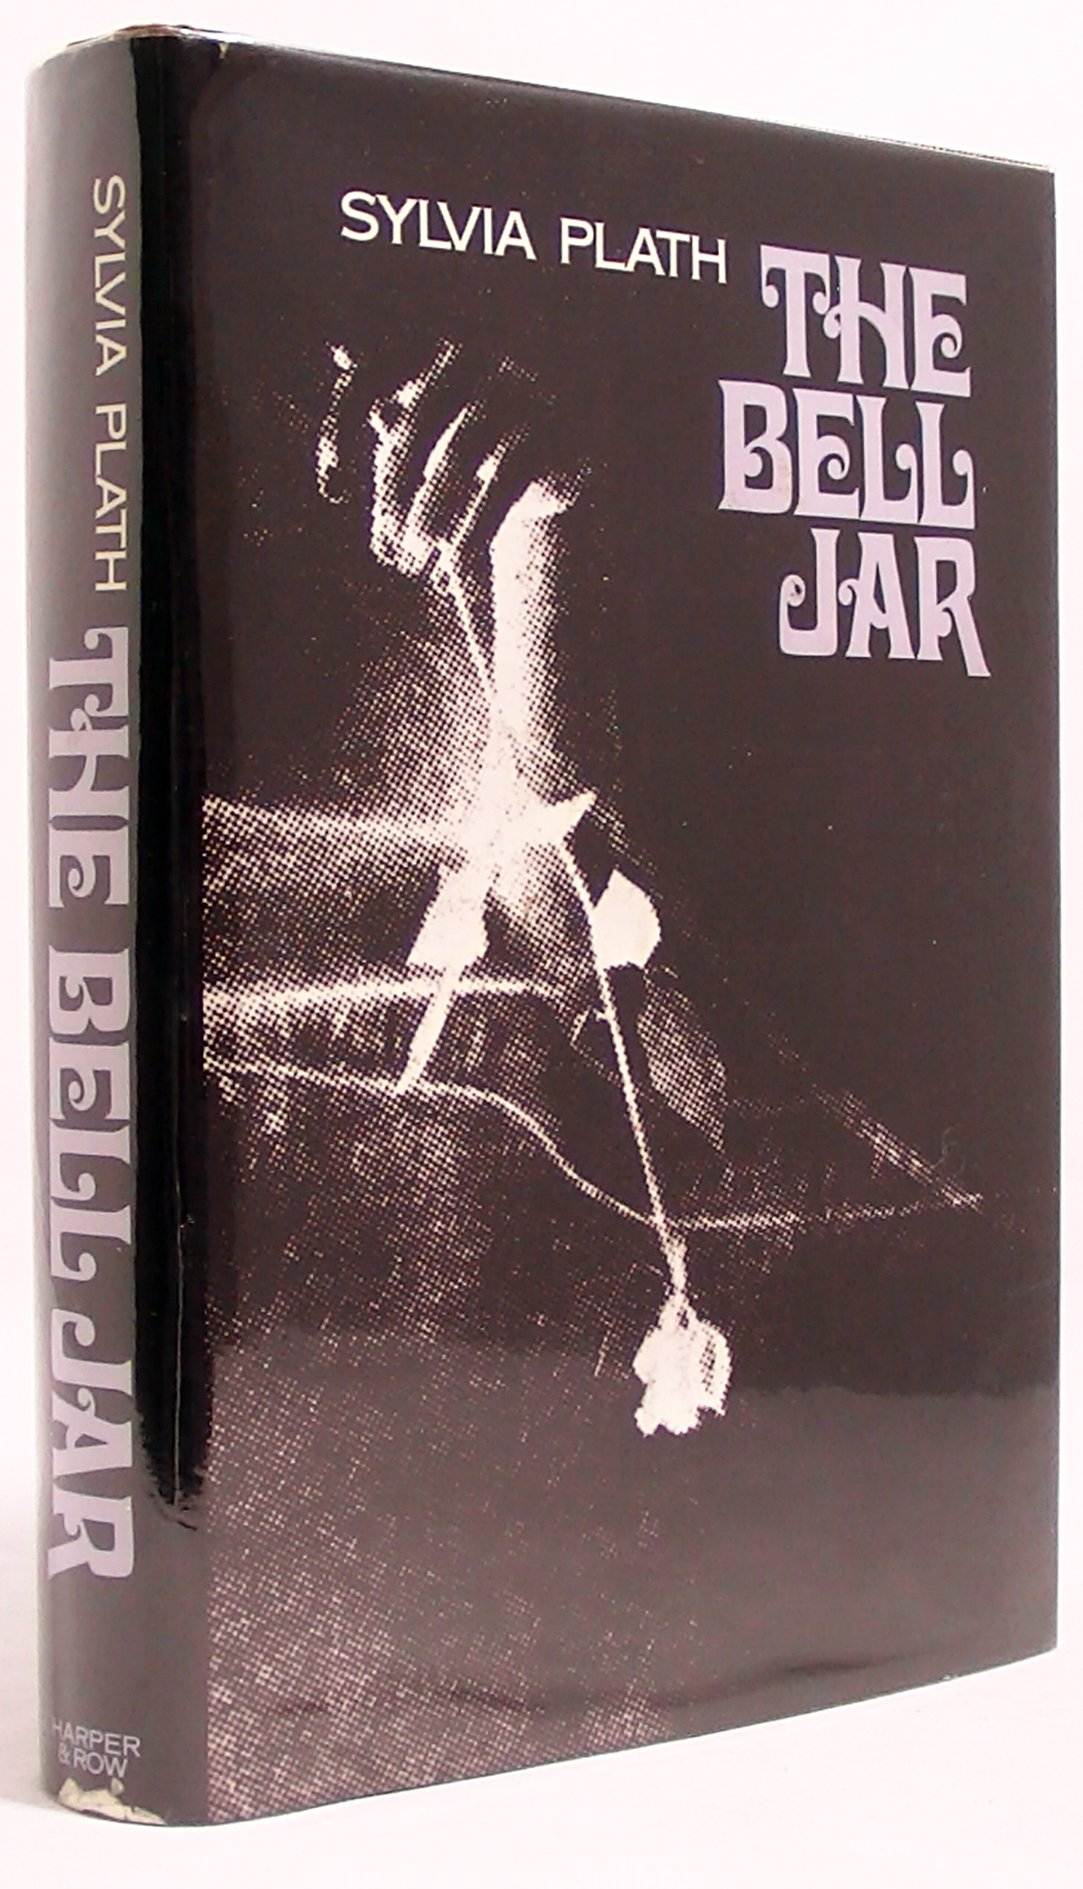 Bell Jar Drawing The Bell Jar / Sylvia Plath